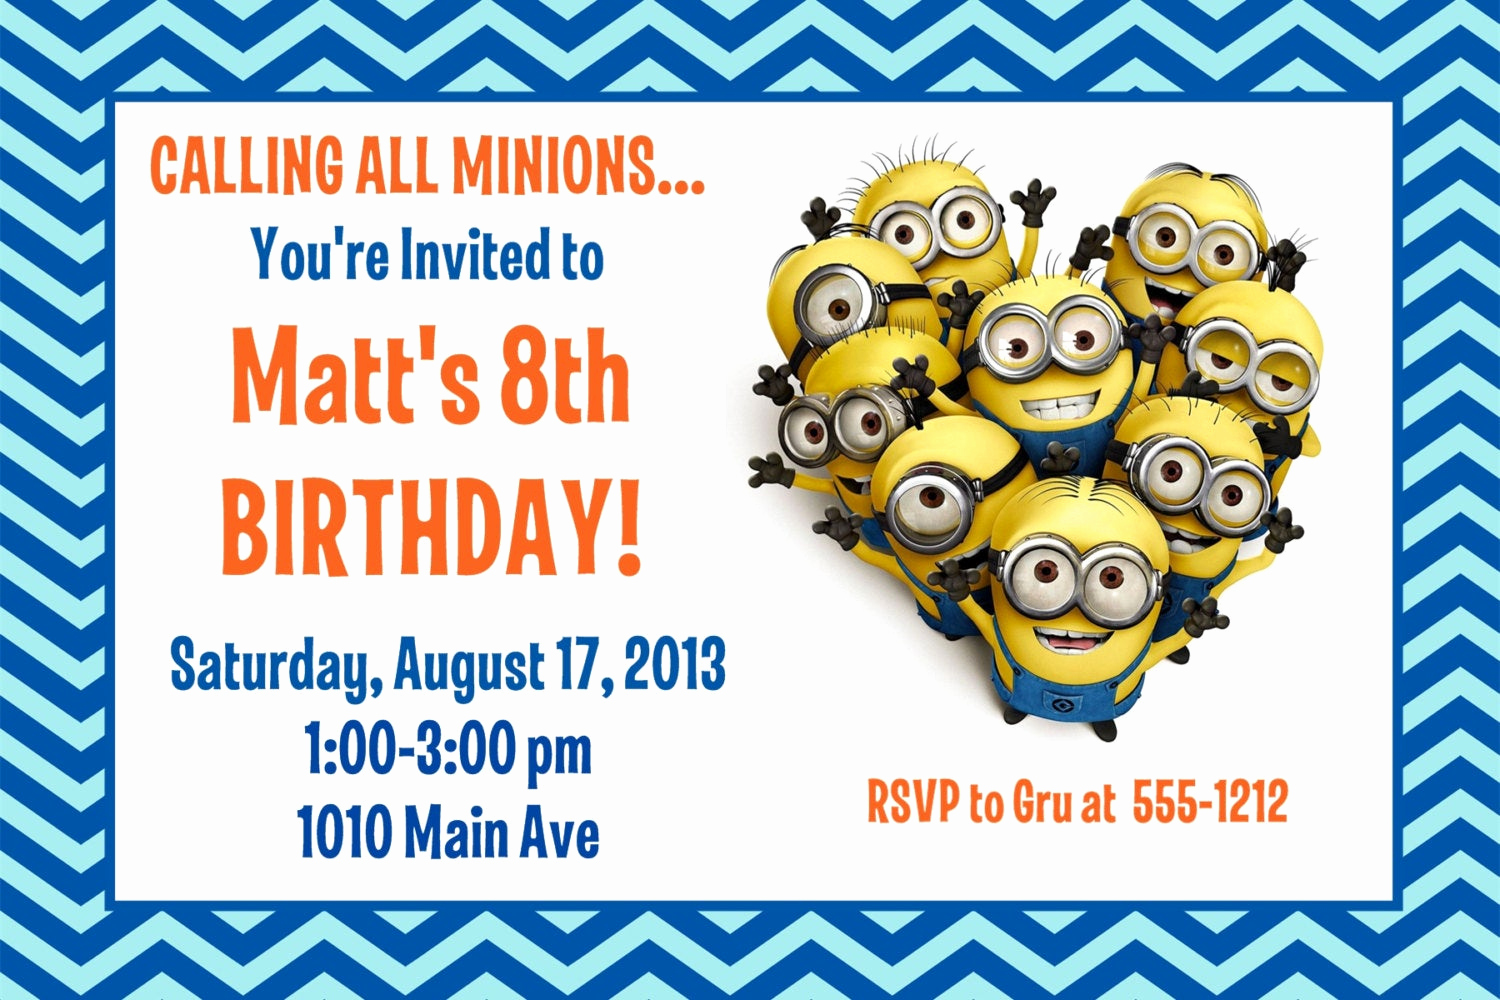 Minions Birthday Invitation Online Best Of Minion Birthday Party Invitation Printable 4x6 or 5x7